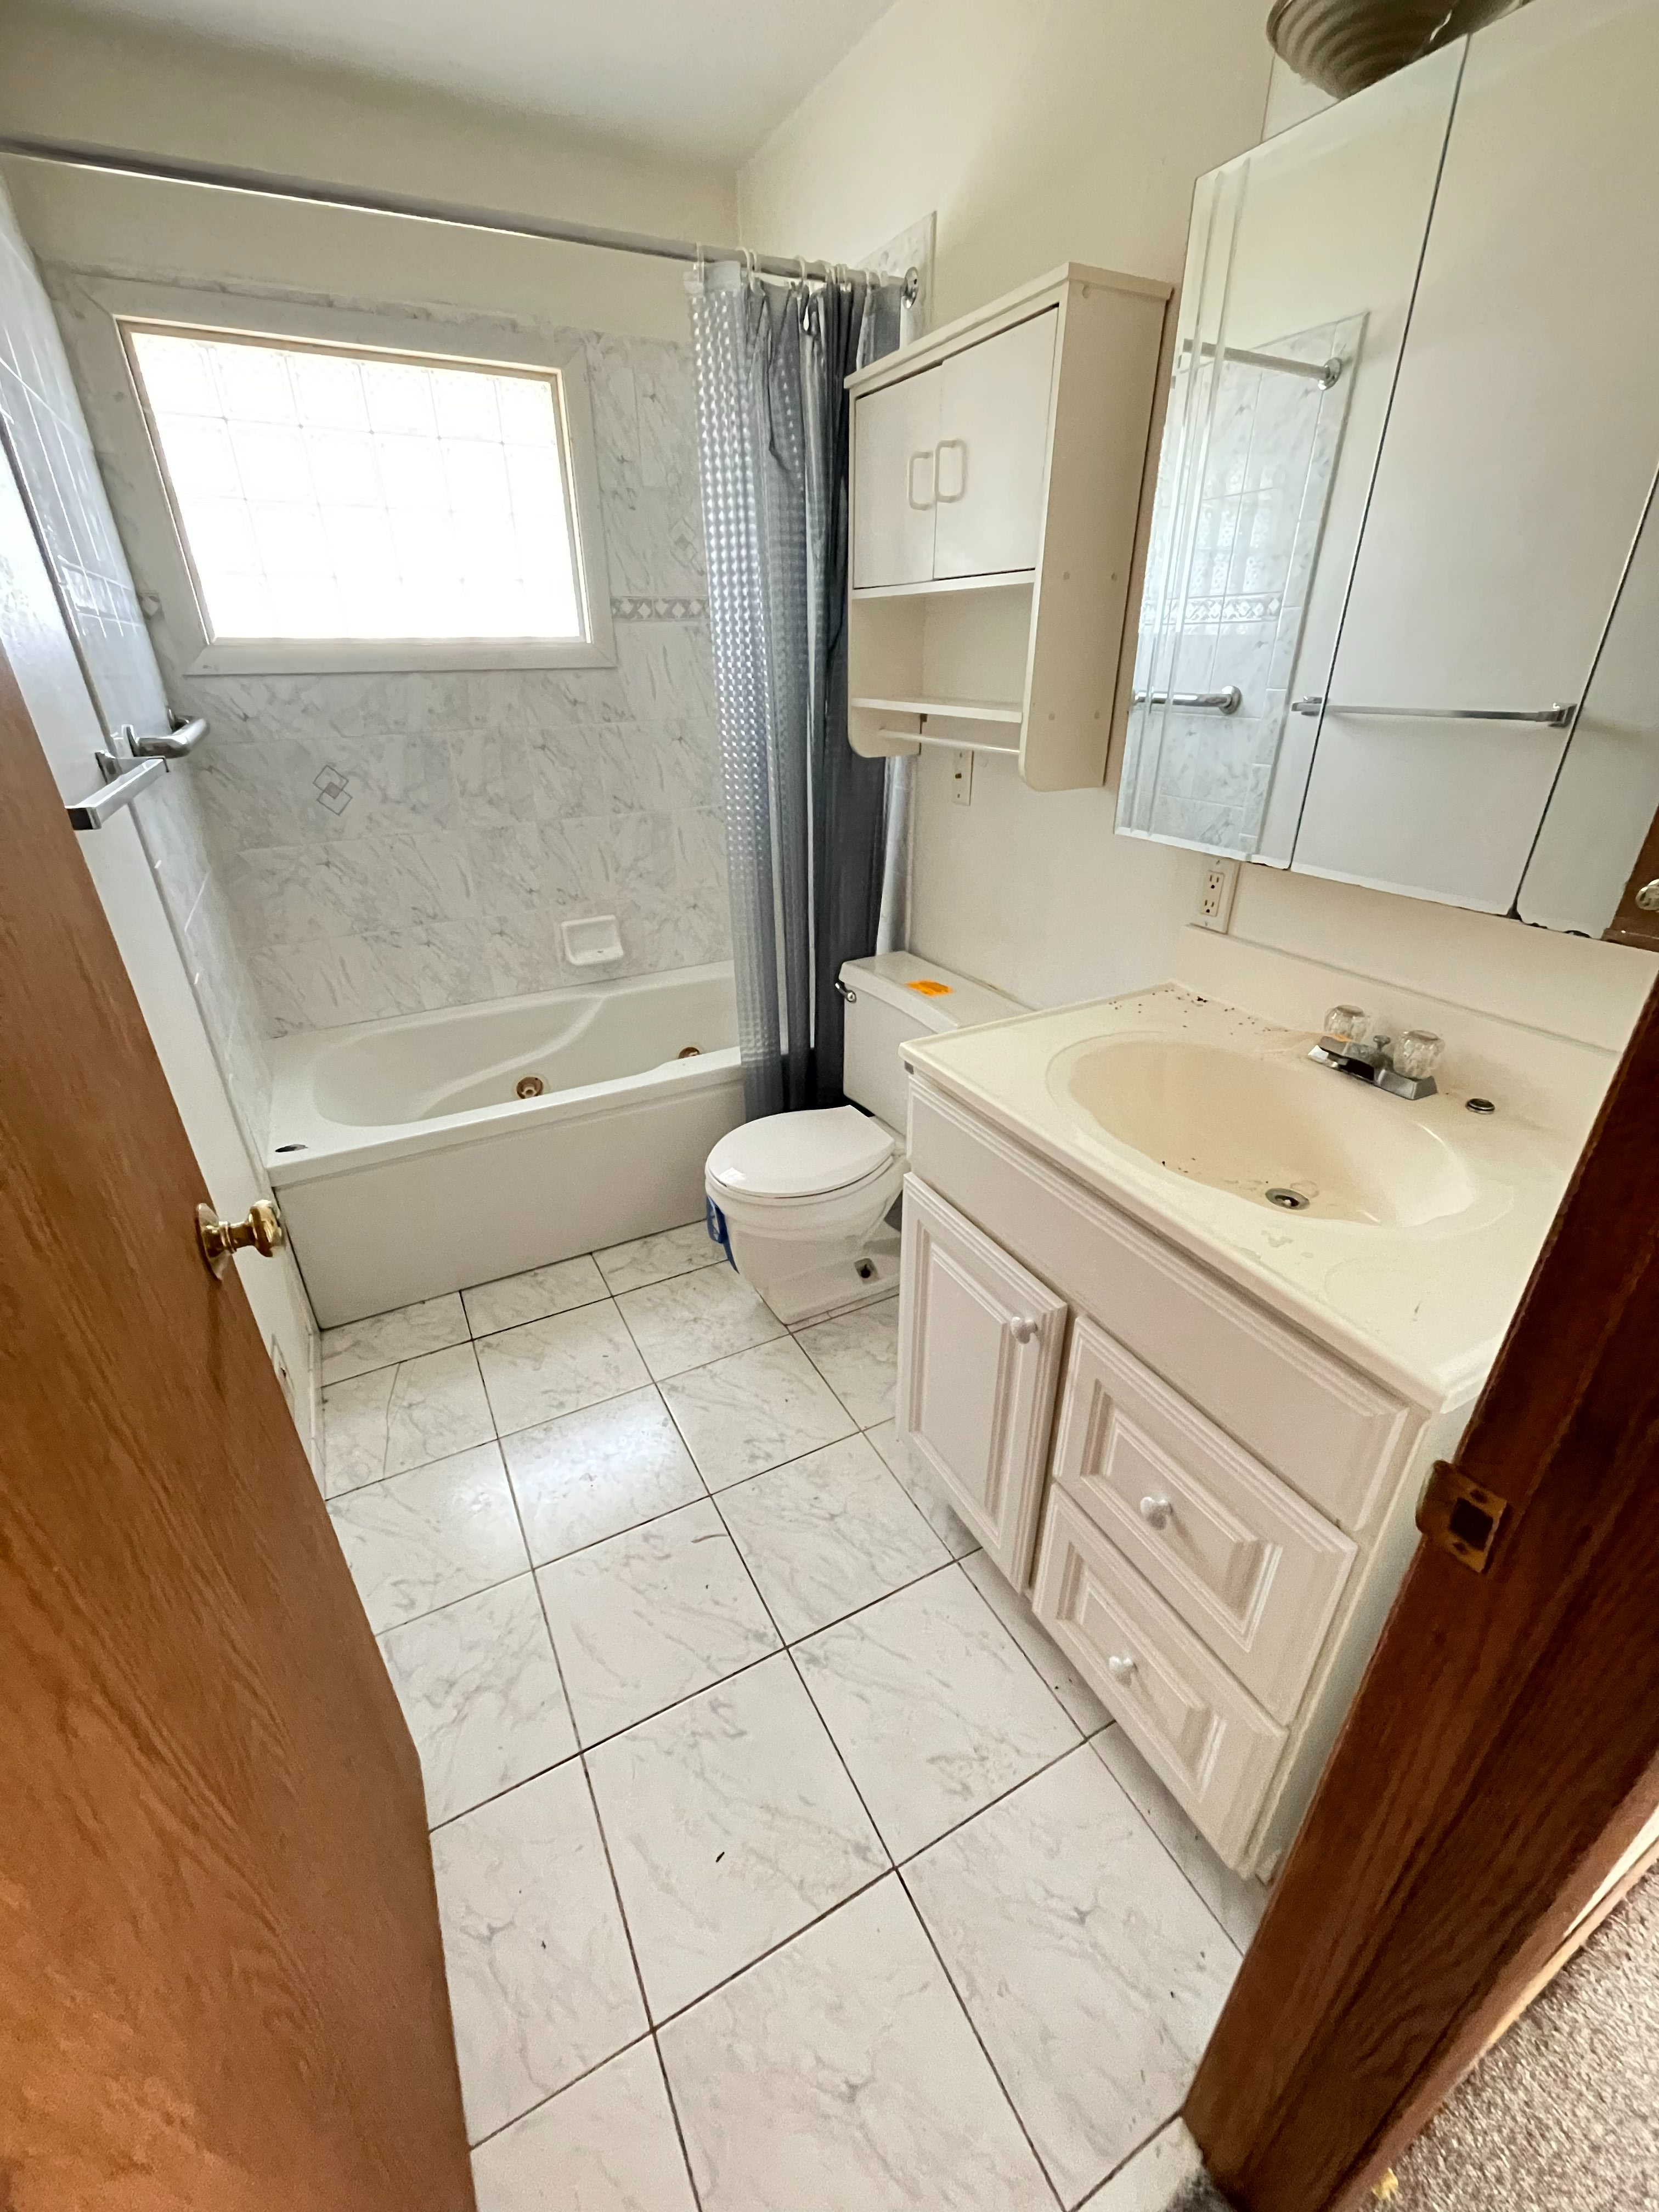 808 Newell Dr (Image - 3)